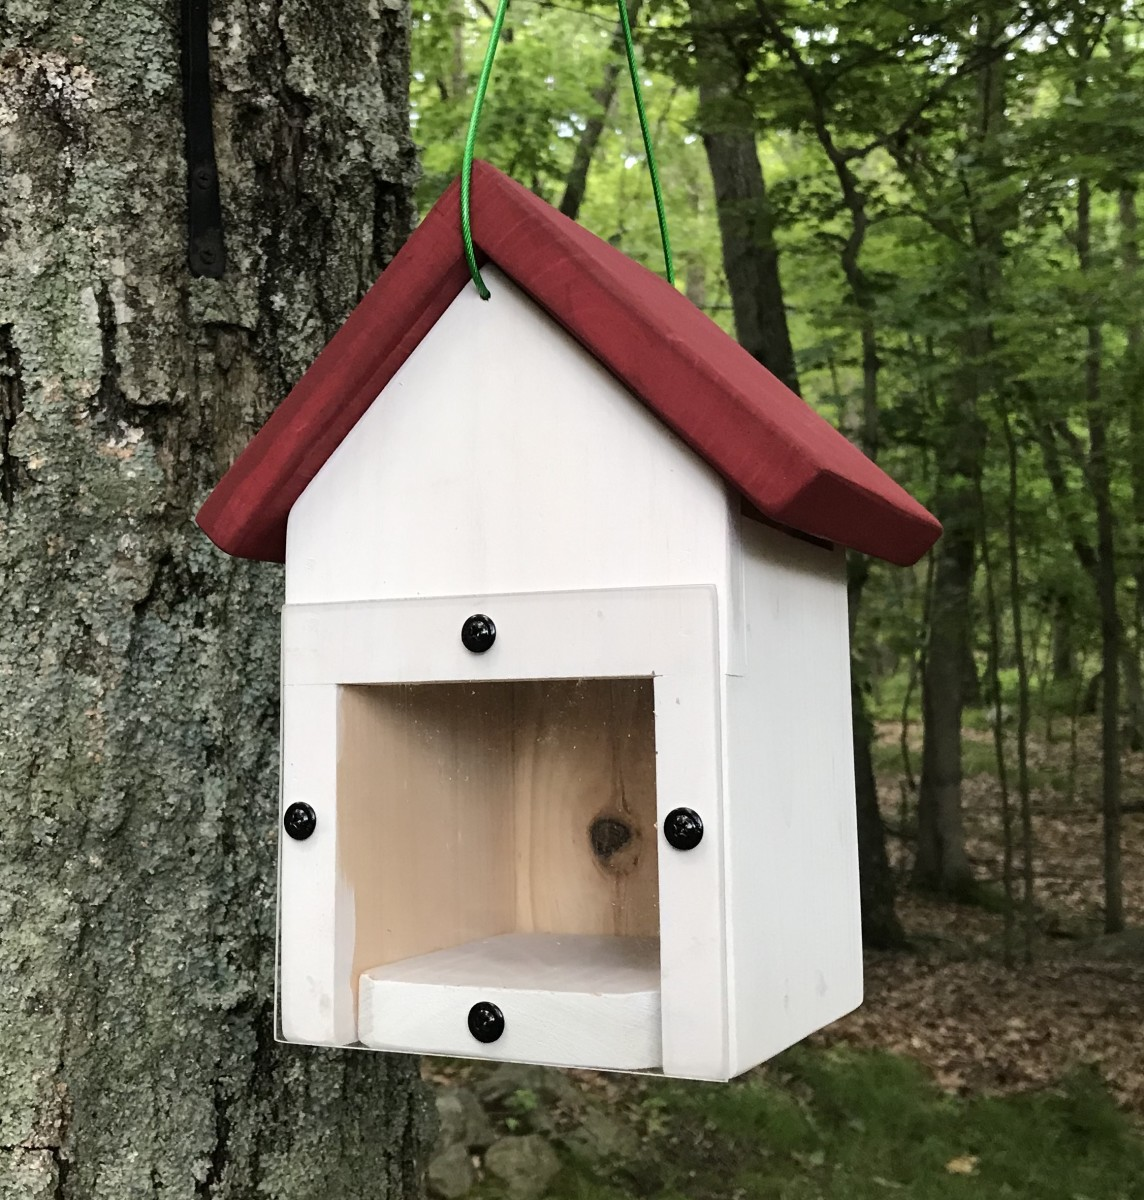 How to Make a Birdhouse With a View: Building a Spy Window Nest Box